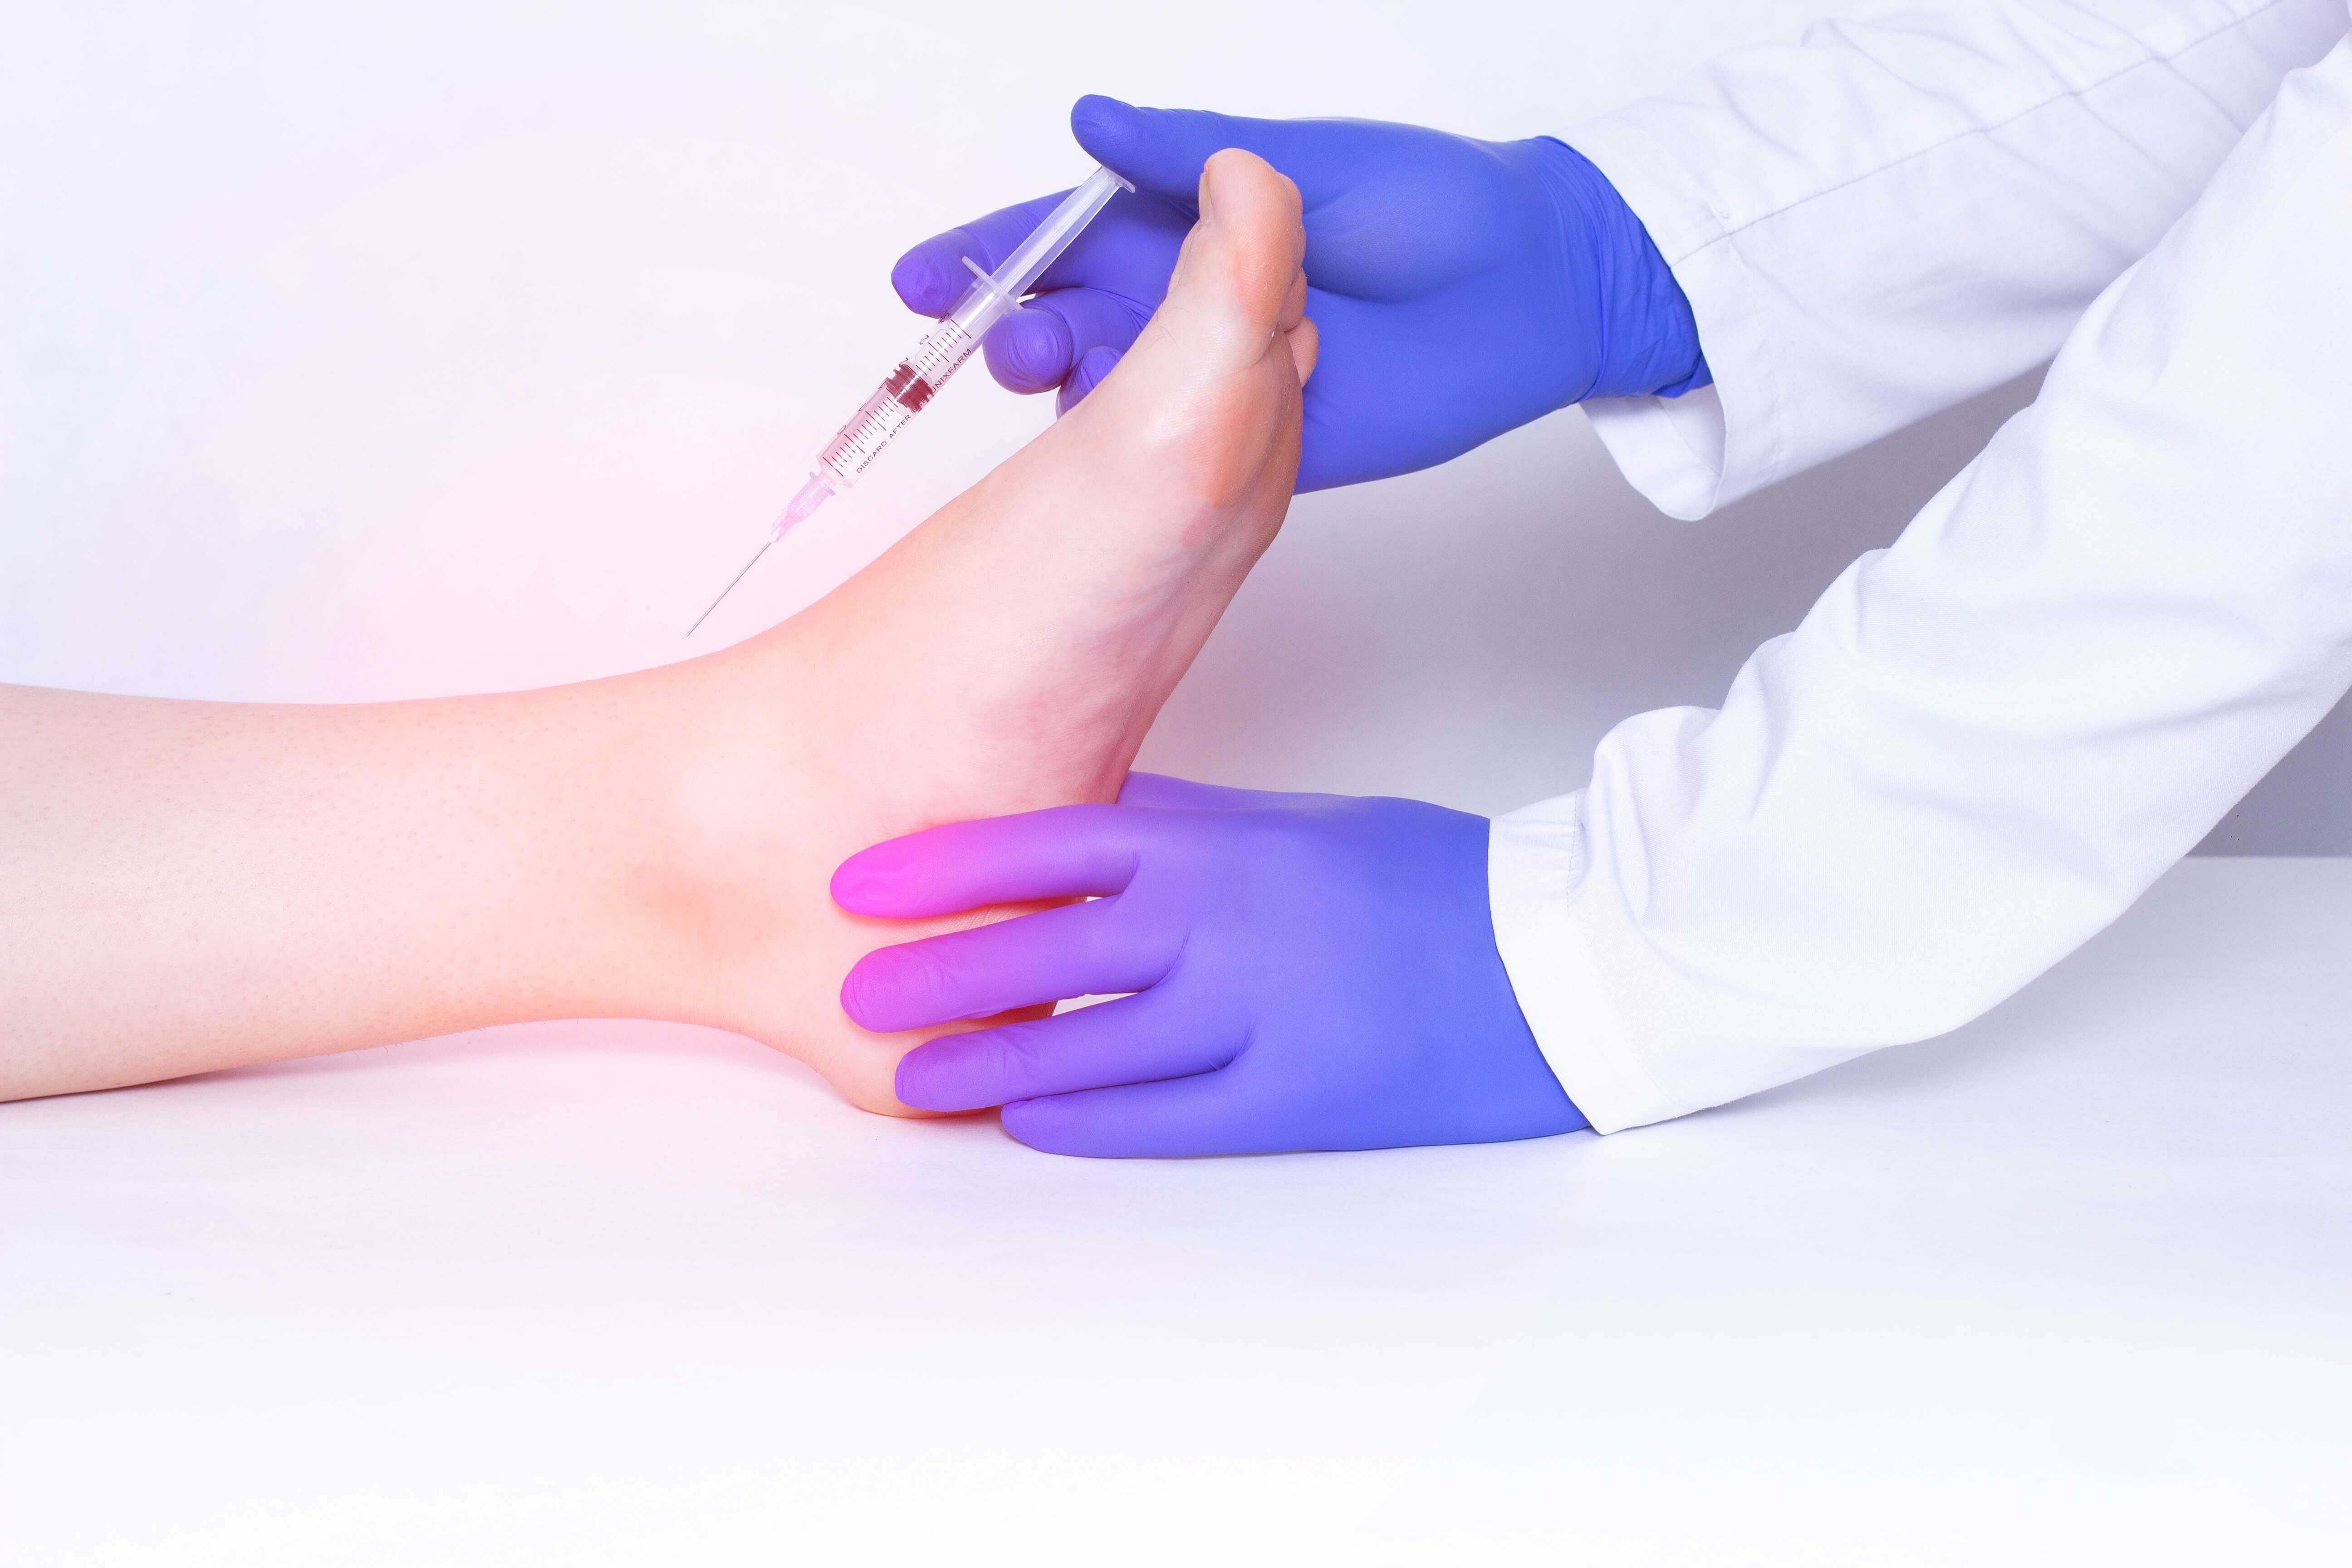 Stem cells being injected into the foot